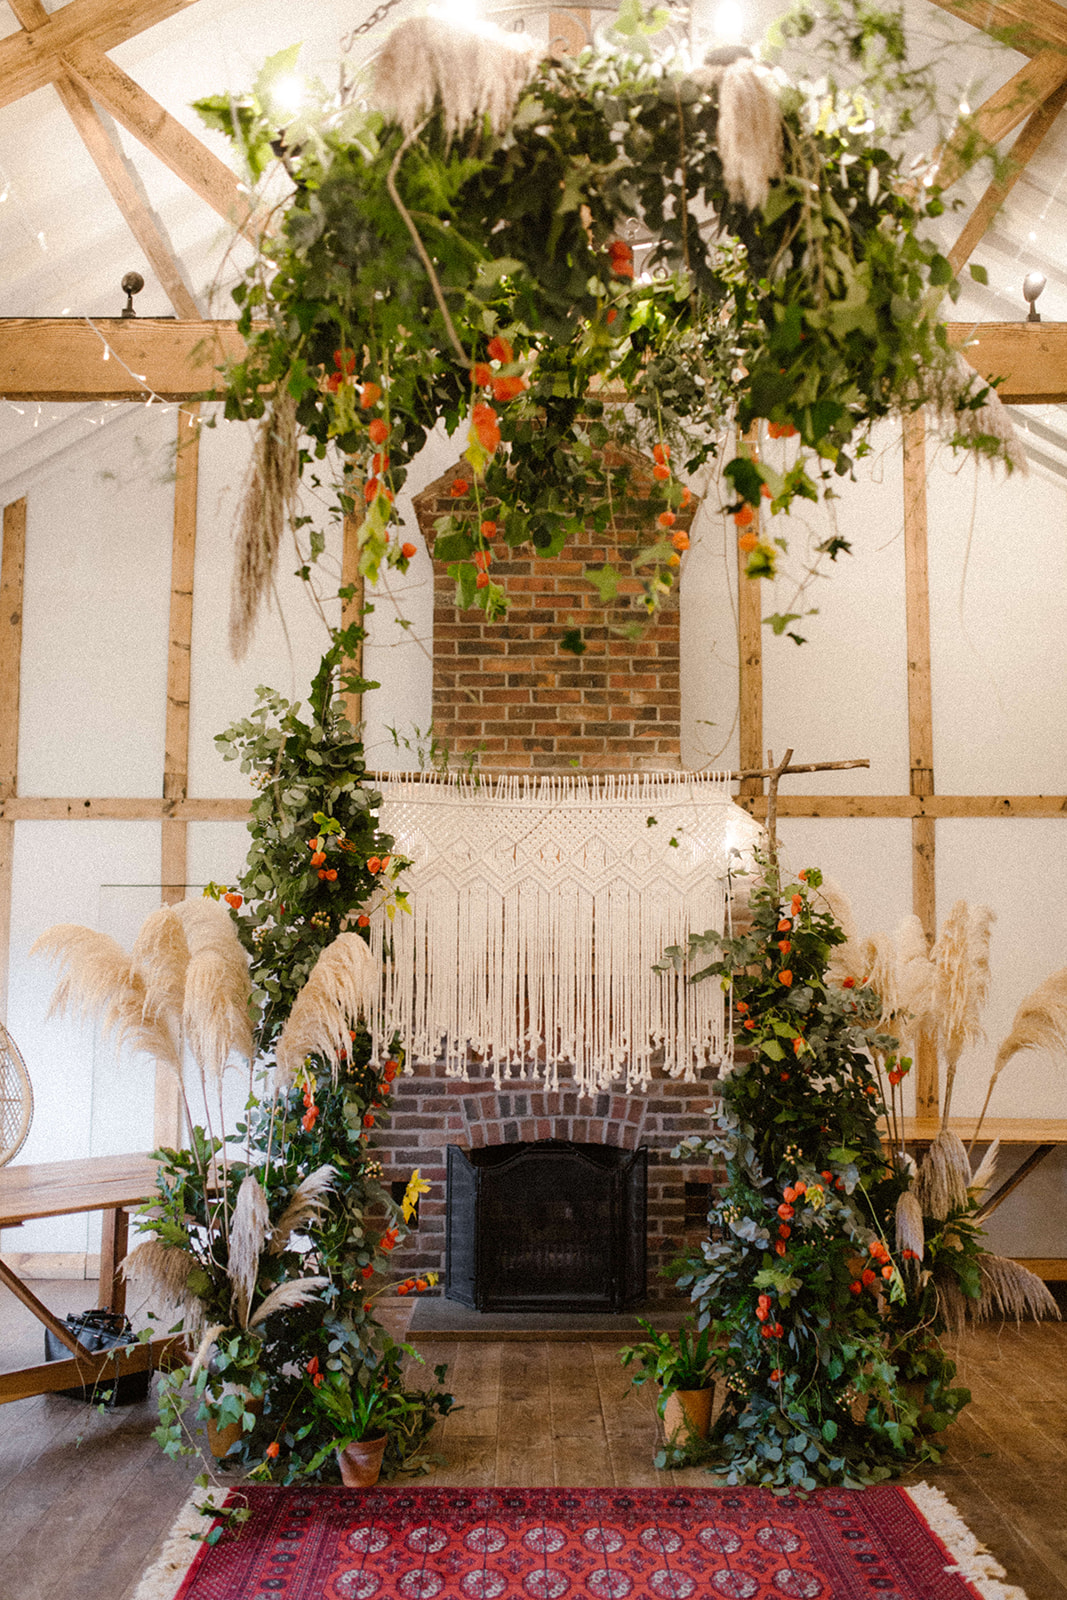 Hanging foliage chandelier, boho ceremony, macrame arch, pampas grass, boho rugs, woodland wedding, ferns, plants wedding dorset hampshire new forest burley manor